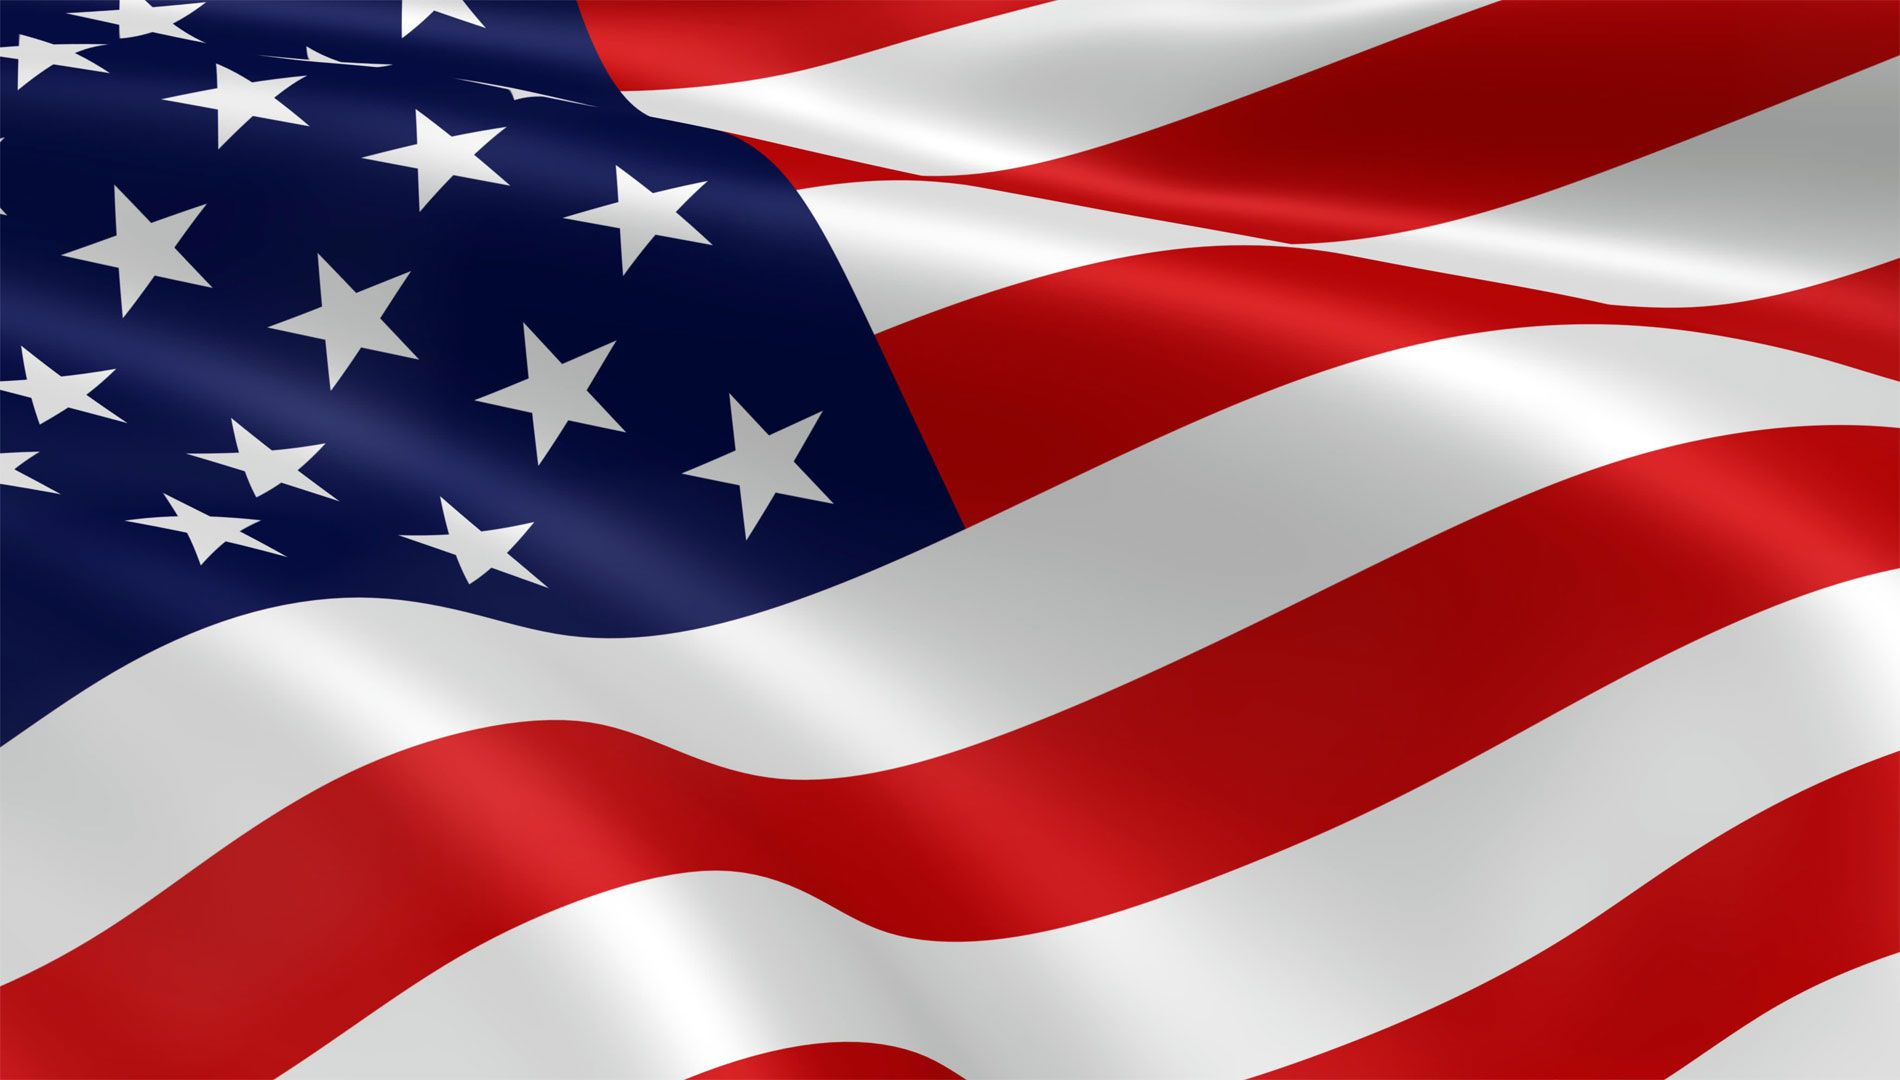 american flag hd images and wallpapers free download | events